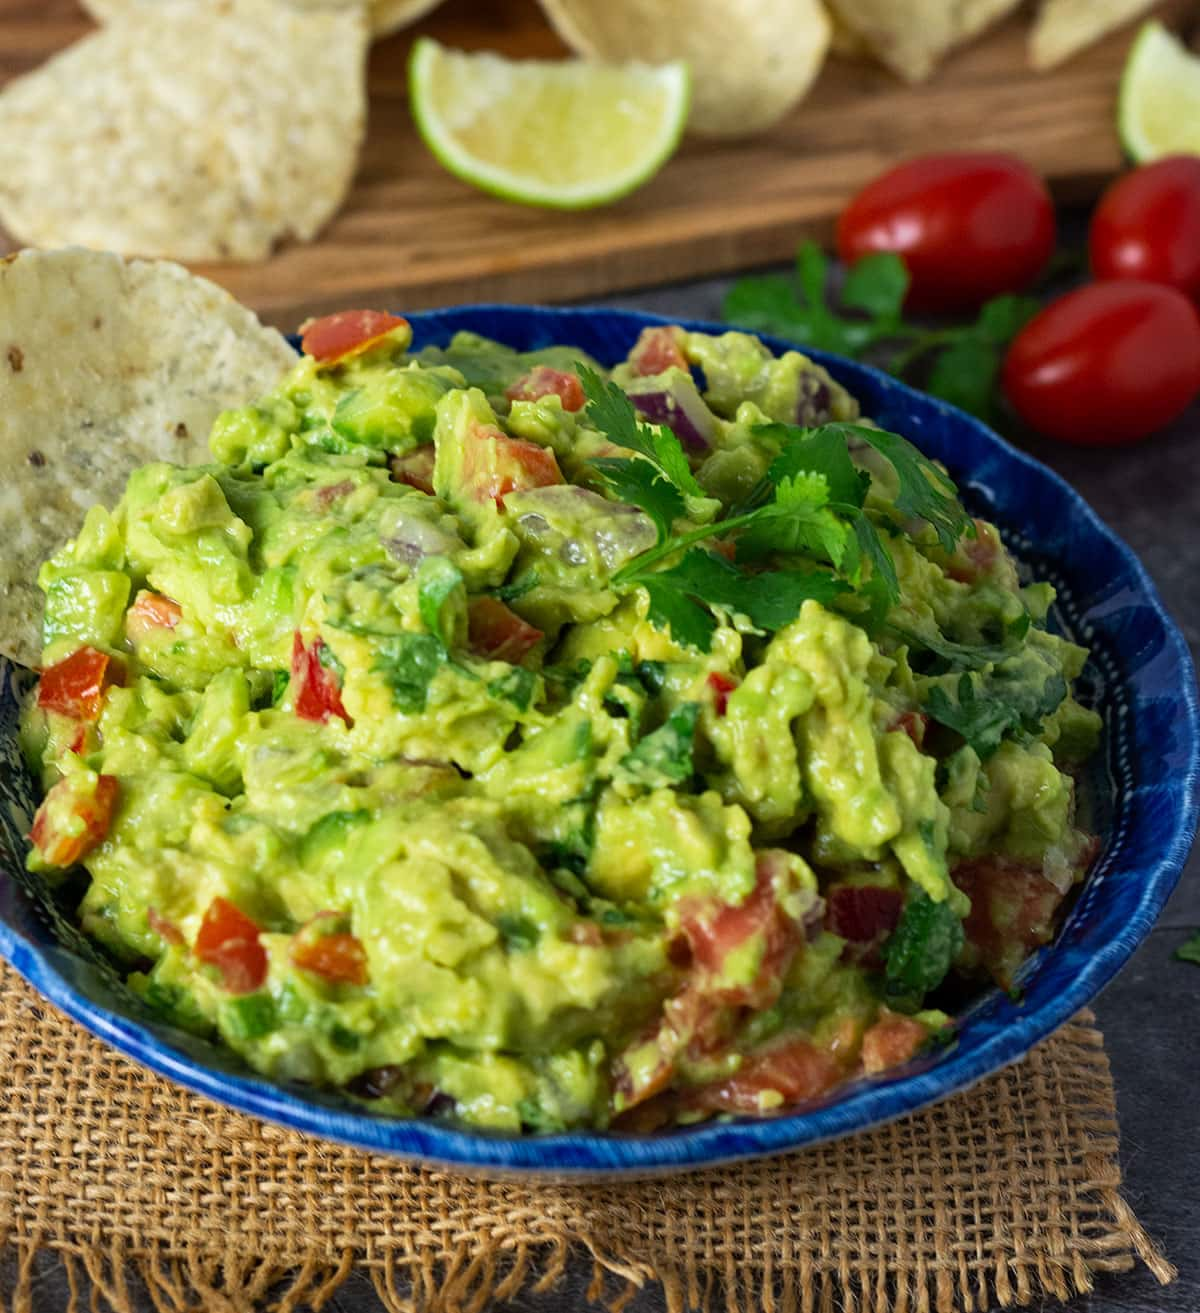 Loaded guacamole recipe with cilantro leaves, tortilla chips on a grey background with cutting board and extra ingredients in the background